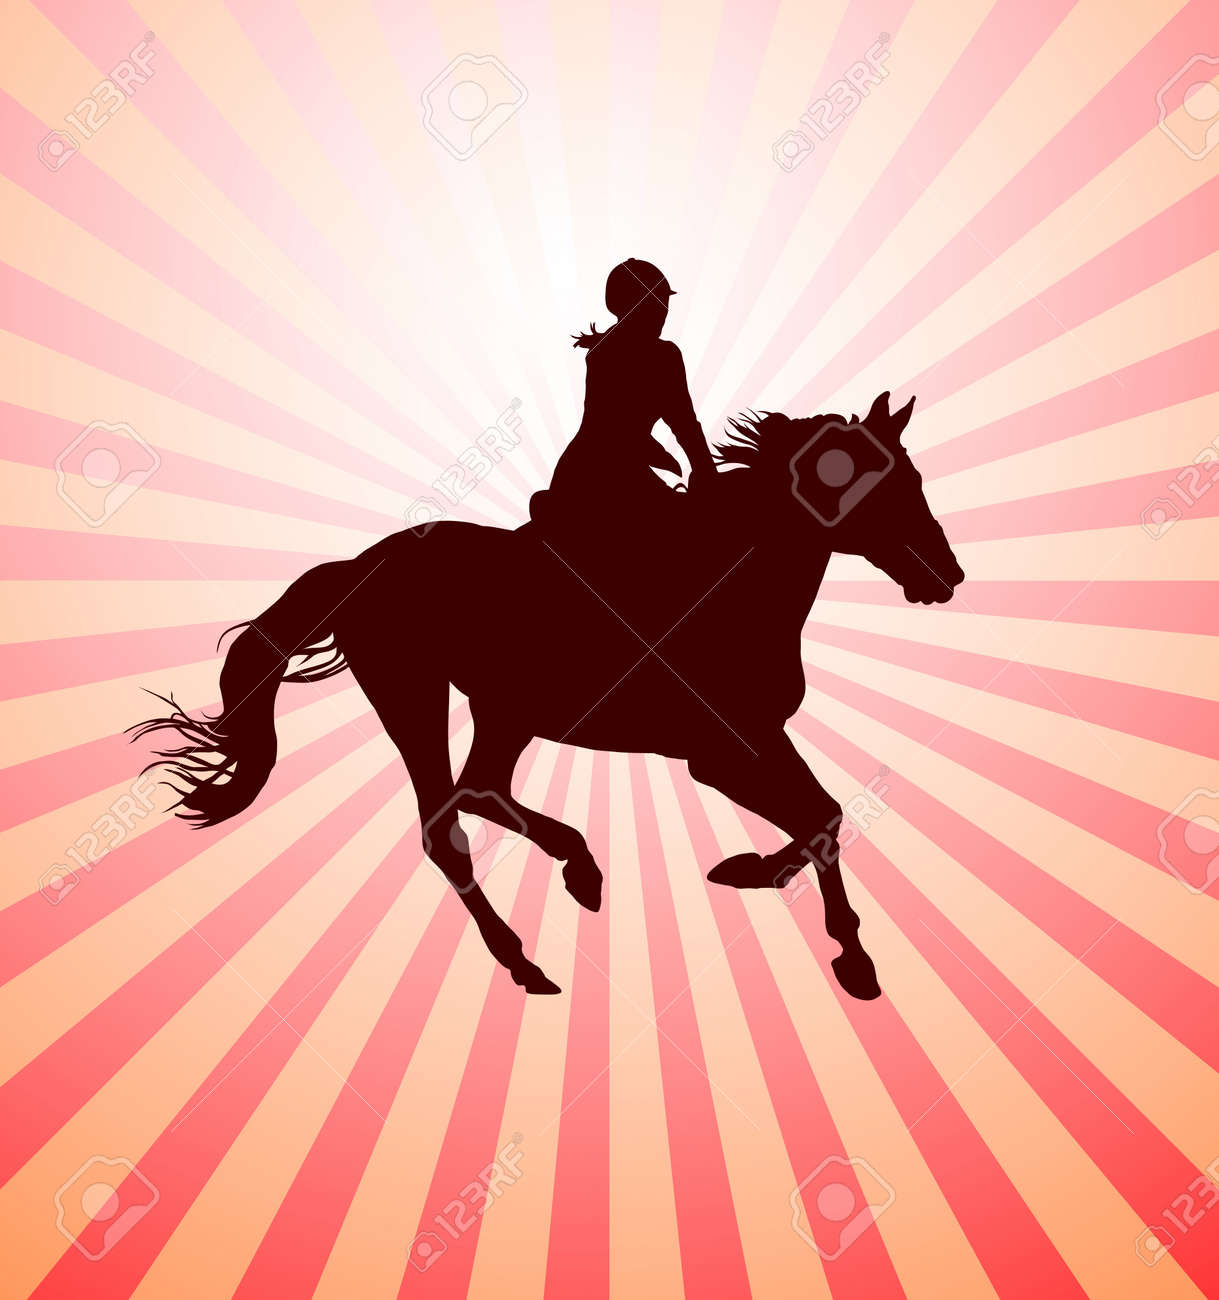 Carrying out horse with horsewoman vector Stock Vector - 11030594